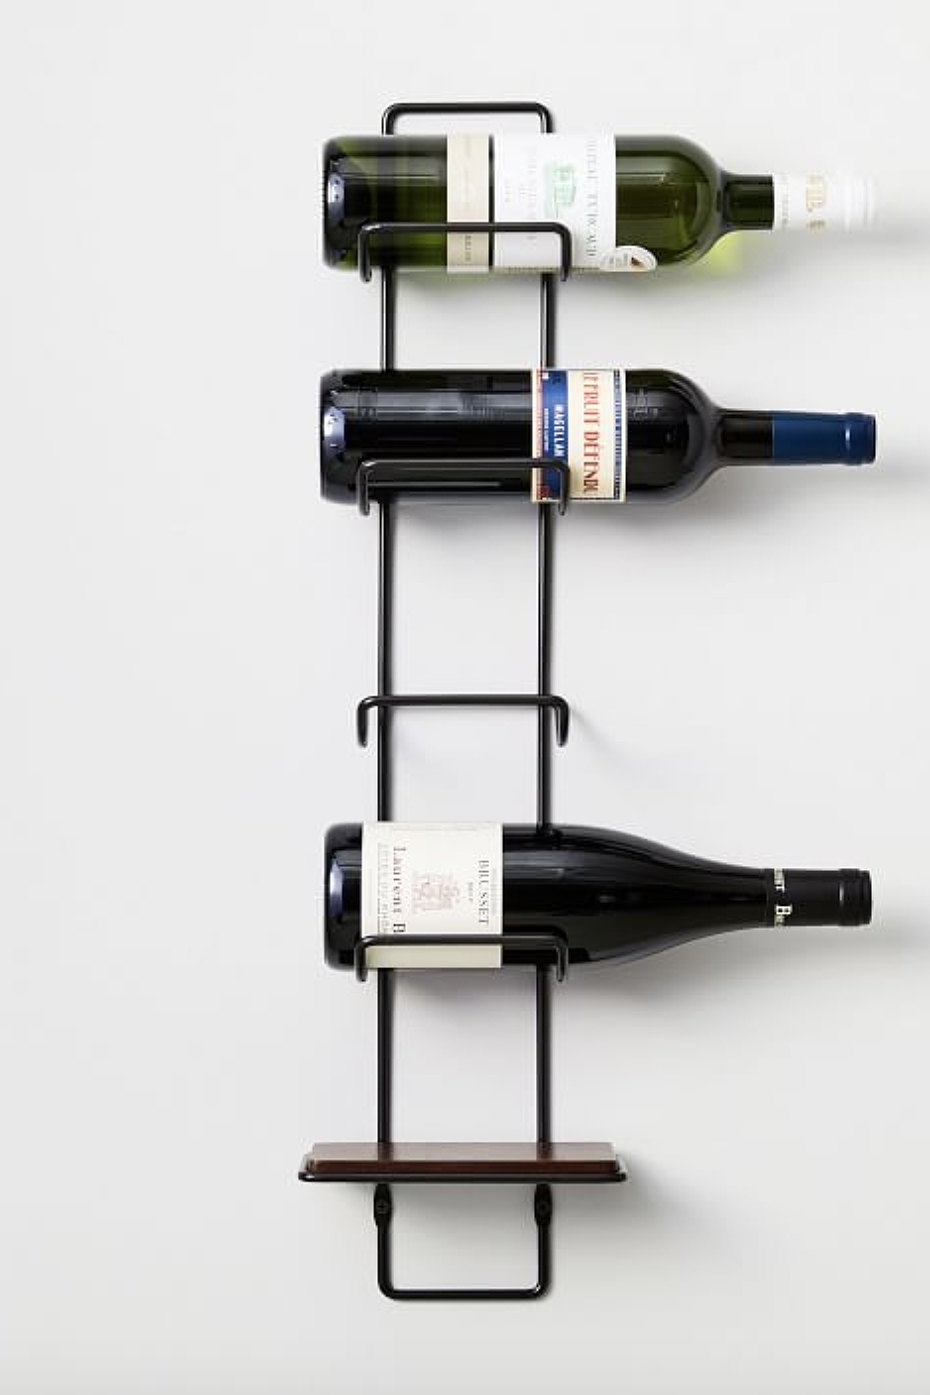 "<p>westelm.com</p><p><a href=""https://go.redirectingat.com?id=74968X1596630&url=https%3A%2F%2Fwww.westelm.com%2Fproducts%2Foutline-wine-rack-d6925&sref=https%3A%2F%2Fwww.delish.com%2Fkitchen-tools%2Fg32868715%2Fwine-racks%2F"" rel=""nofollow noopener"" target=""_blank"" data-ylk=""slk:CHECK PRICE"" class=""link rapid-noclick-resp"">CHECK PRICE</a></p><p>This sleek and modern wine rack holds up to five bottles of your favorite labels. Since the rack is narrow and can be mounted on a wall, it's great for small living spaces. The frame is made of steel while the mango wood used was sourced from tress that no longer produce fruit. </p>"